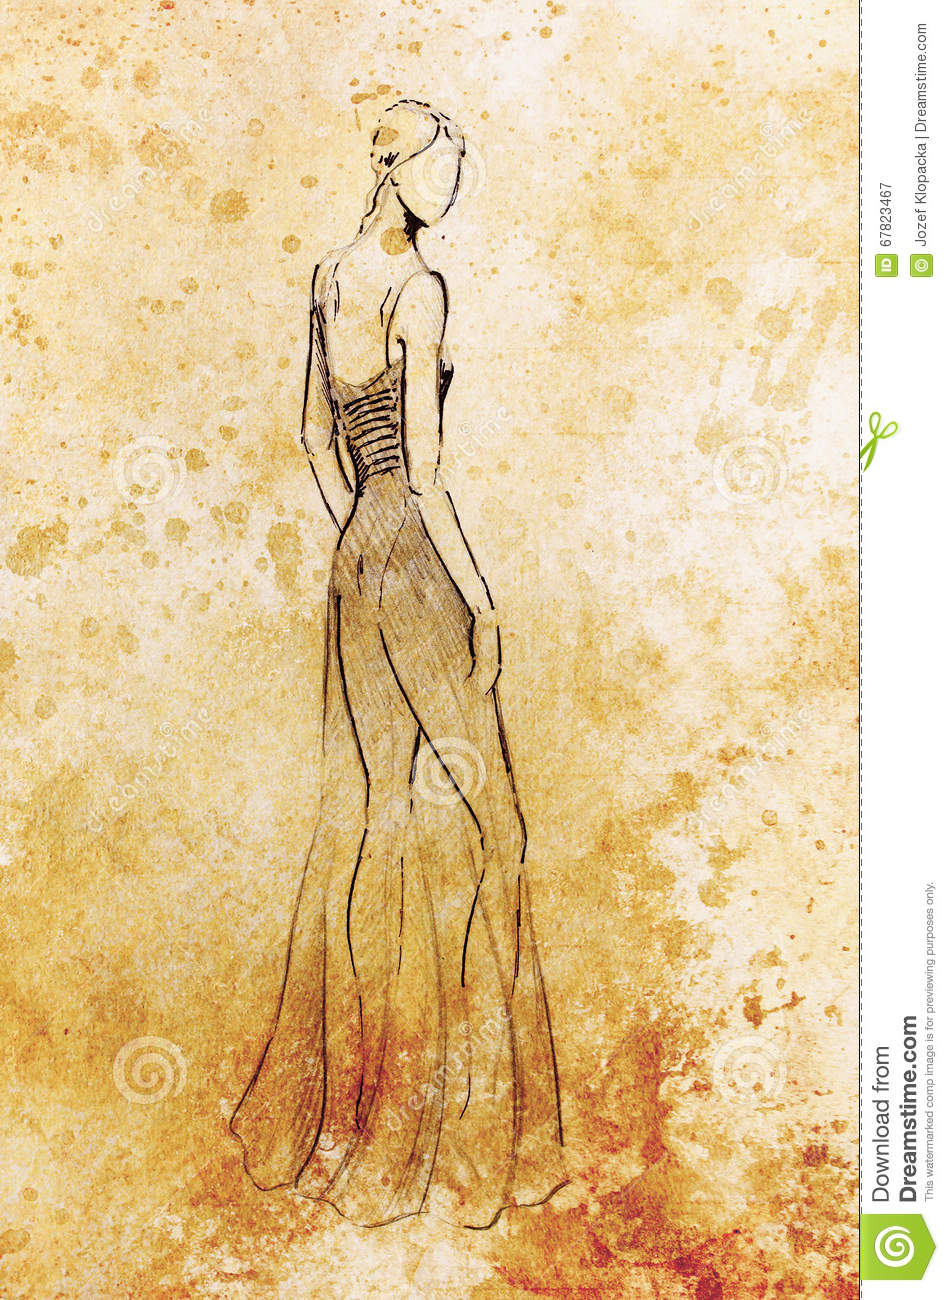 Standing figure woman pencil sketch on paper watercolor background